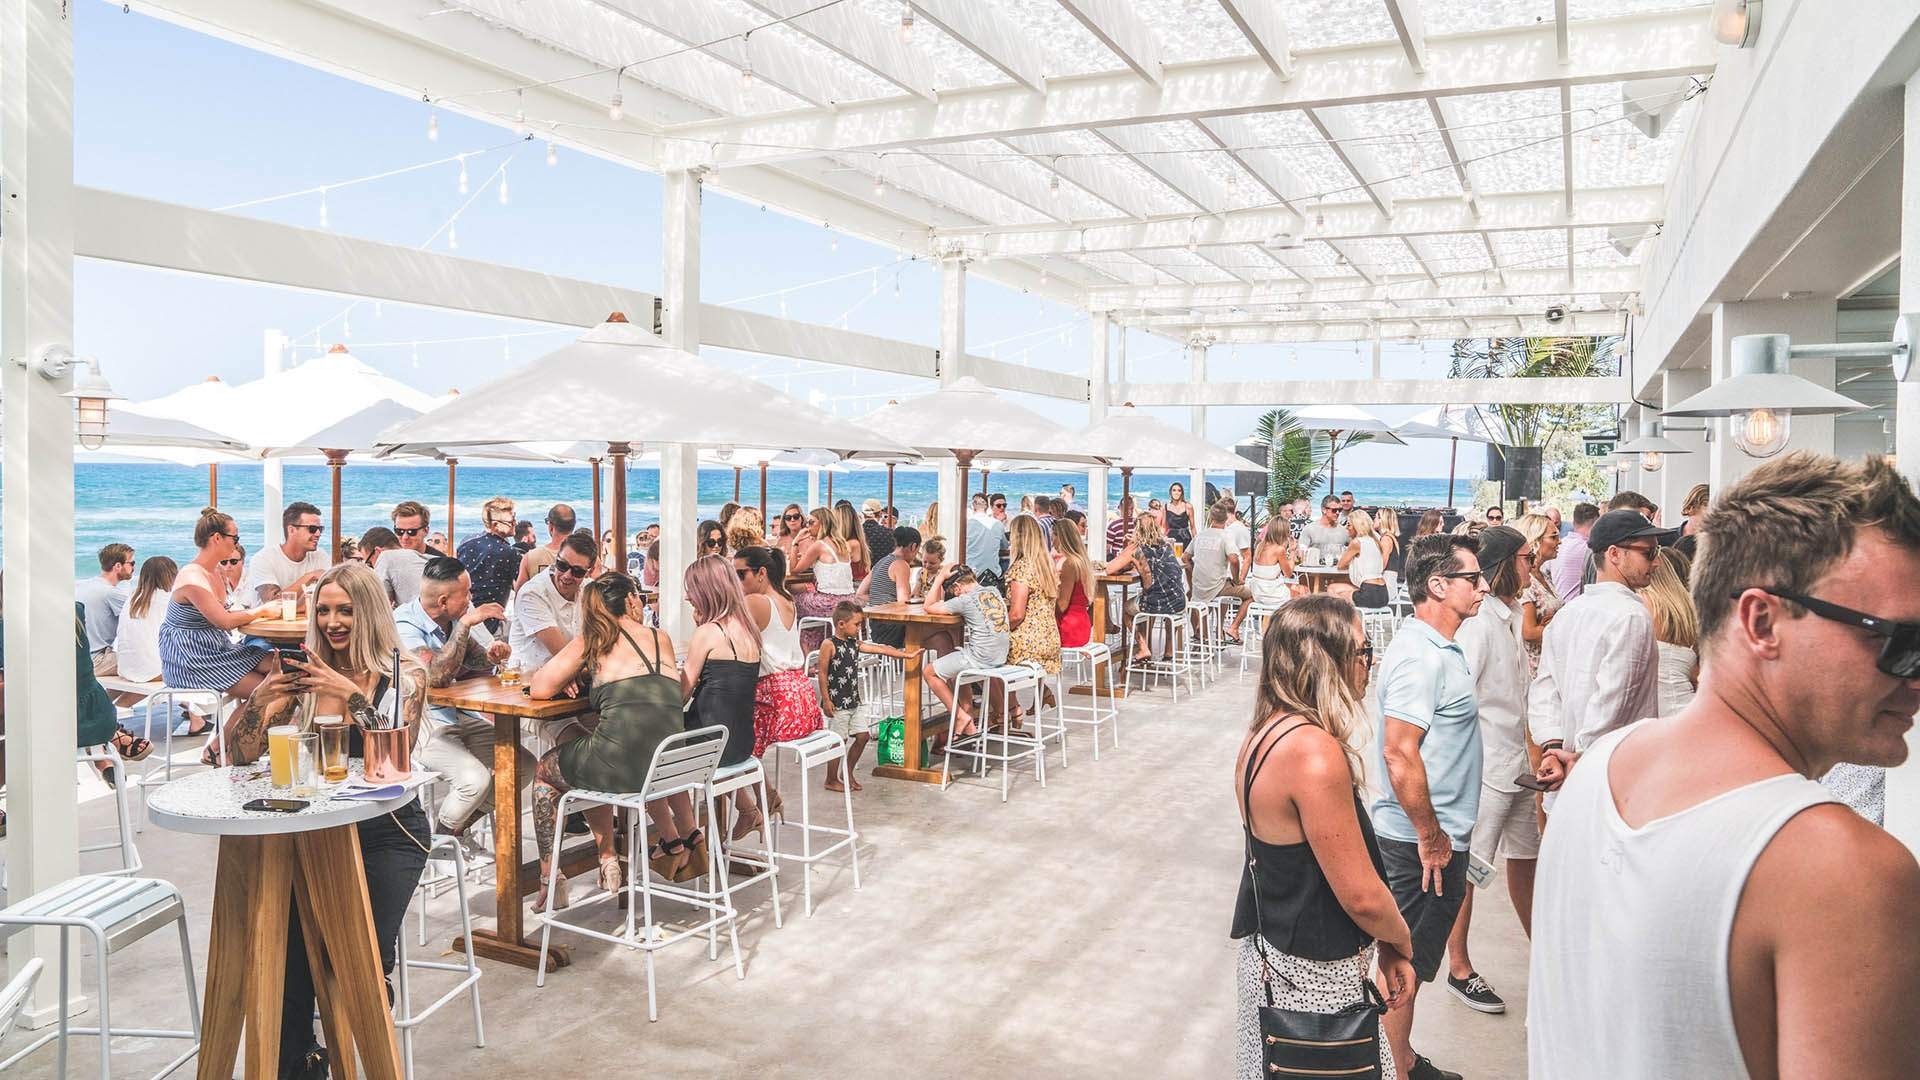 Burleigh Pavilion Is the Gold Coast's Huge New Beachfront Bar and Eatery